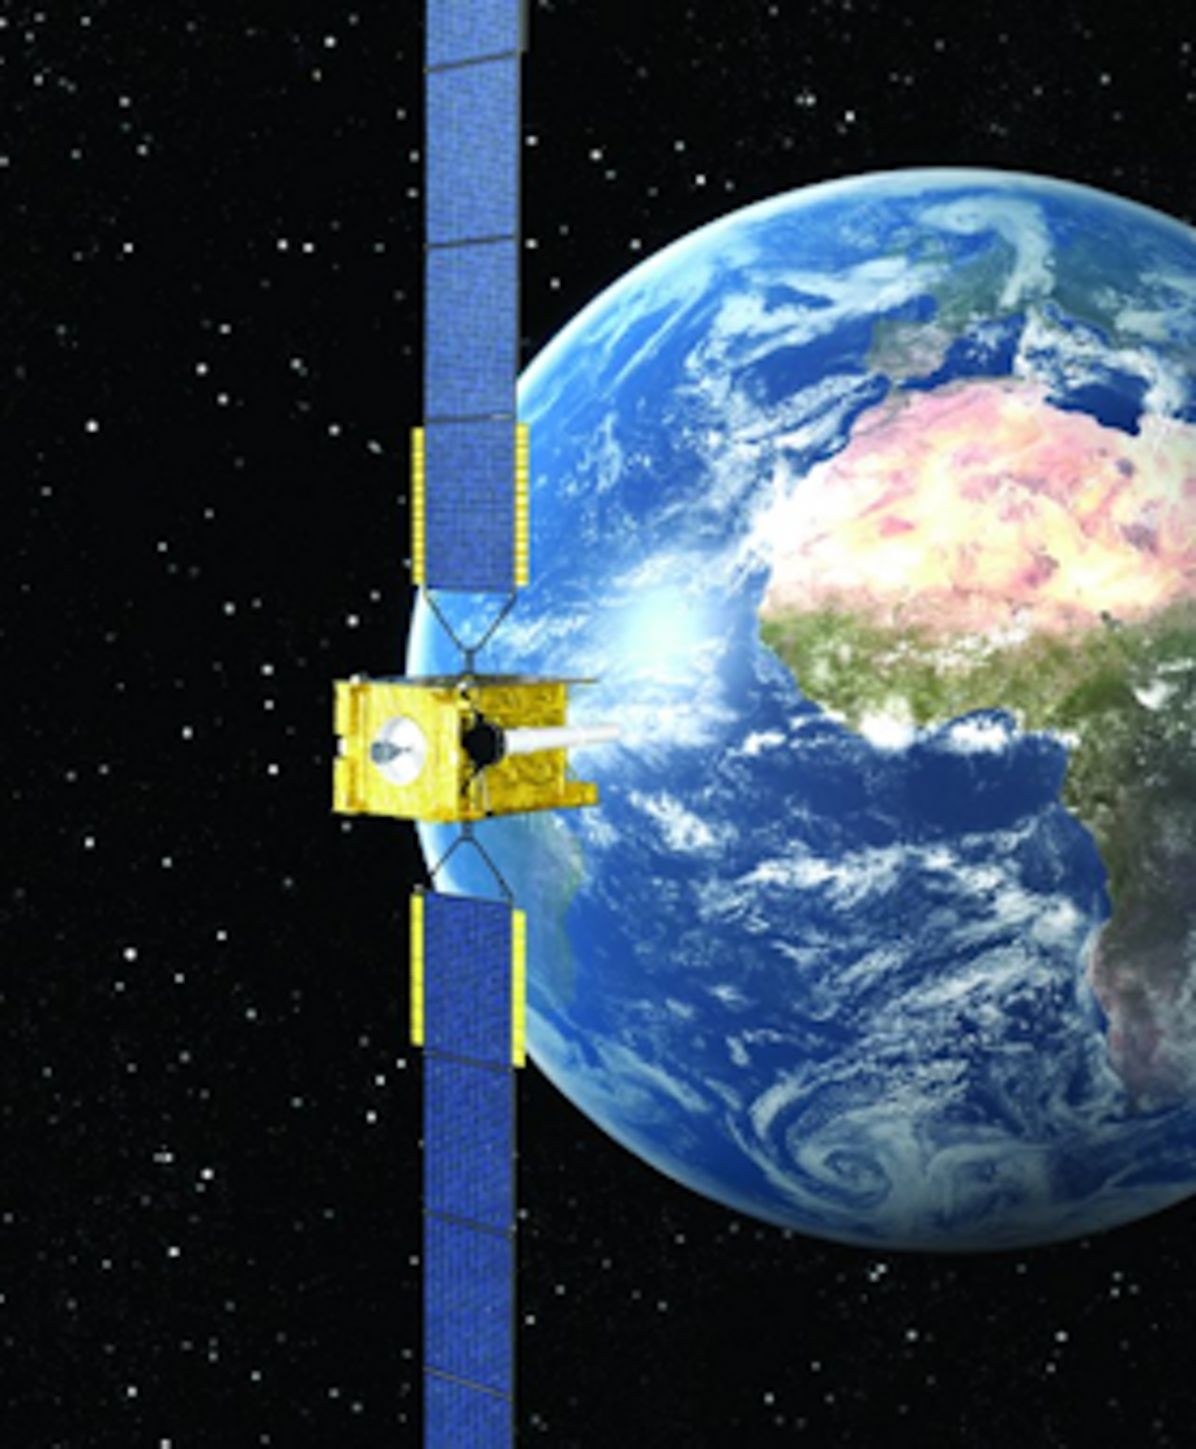 Skynet 5A secure communications satellite